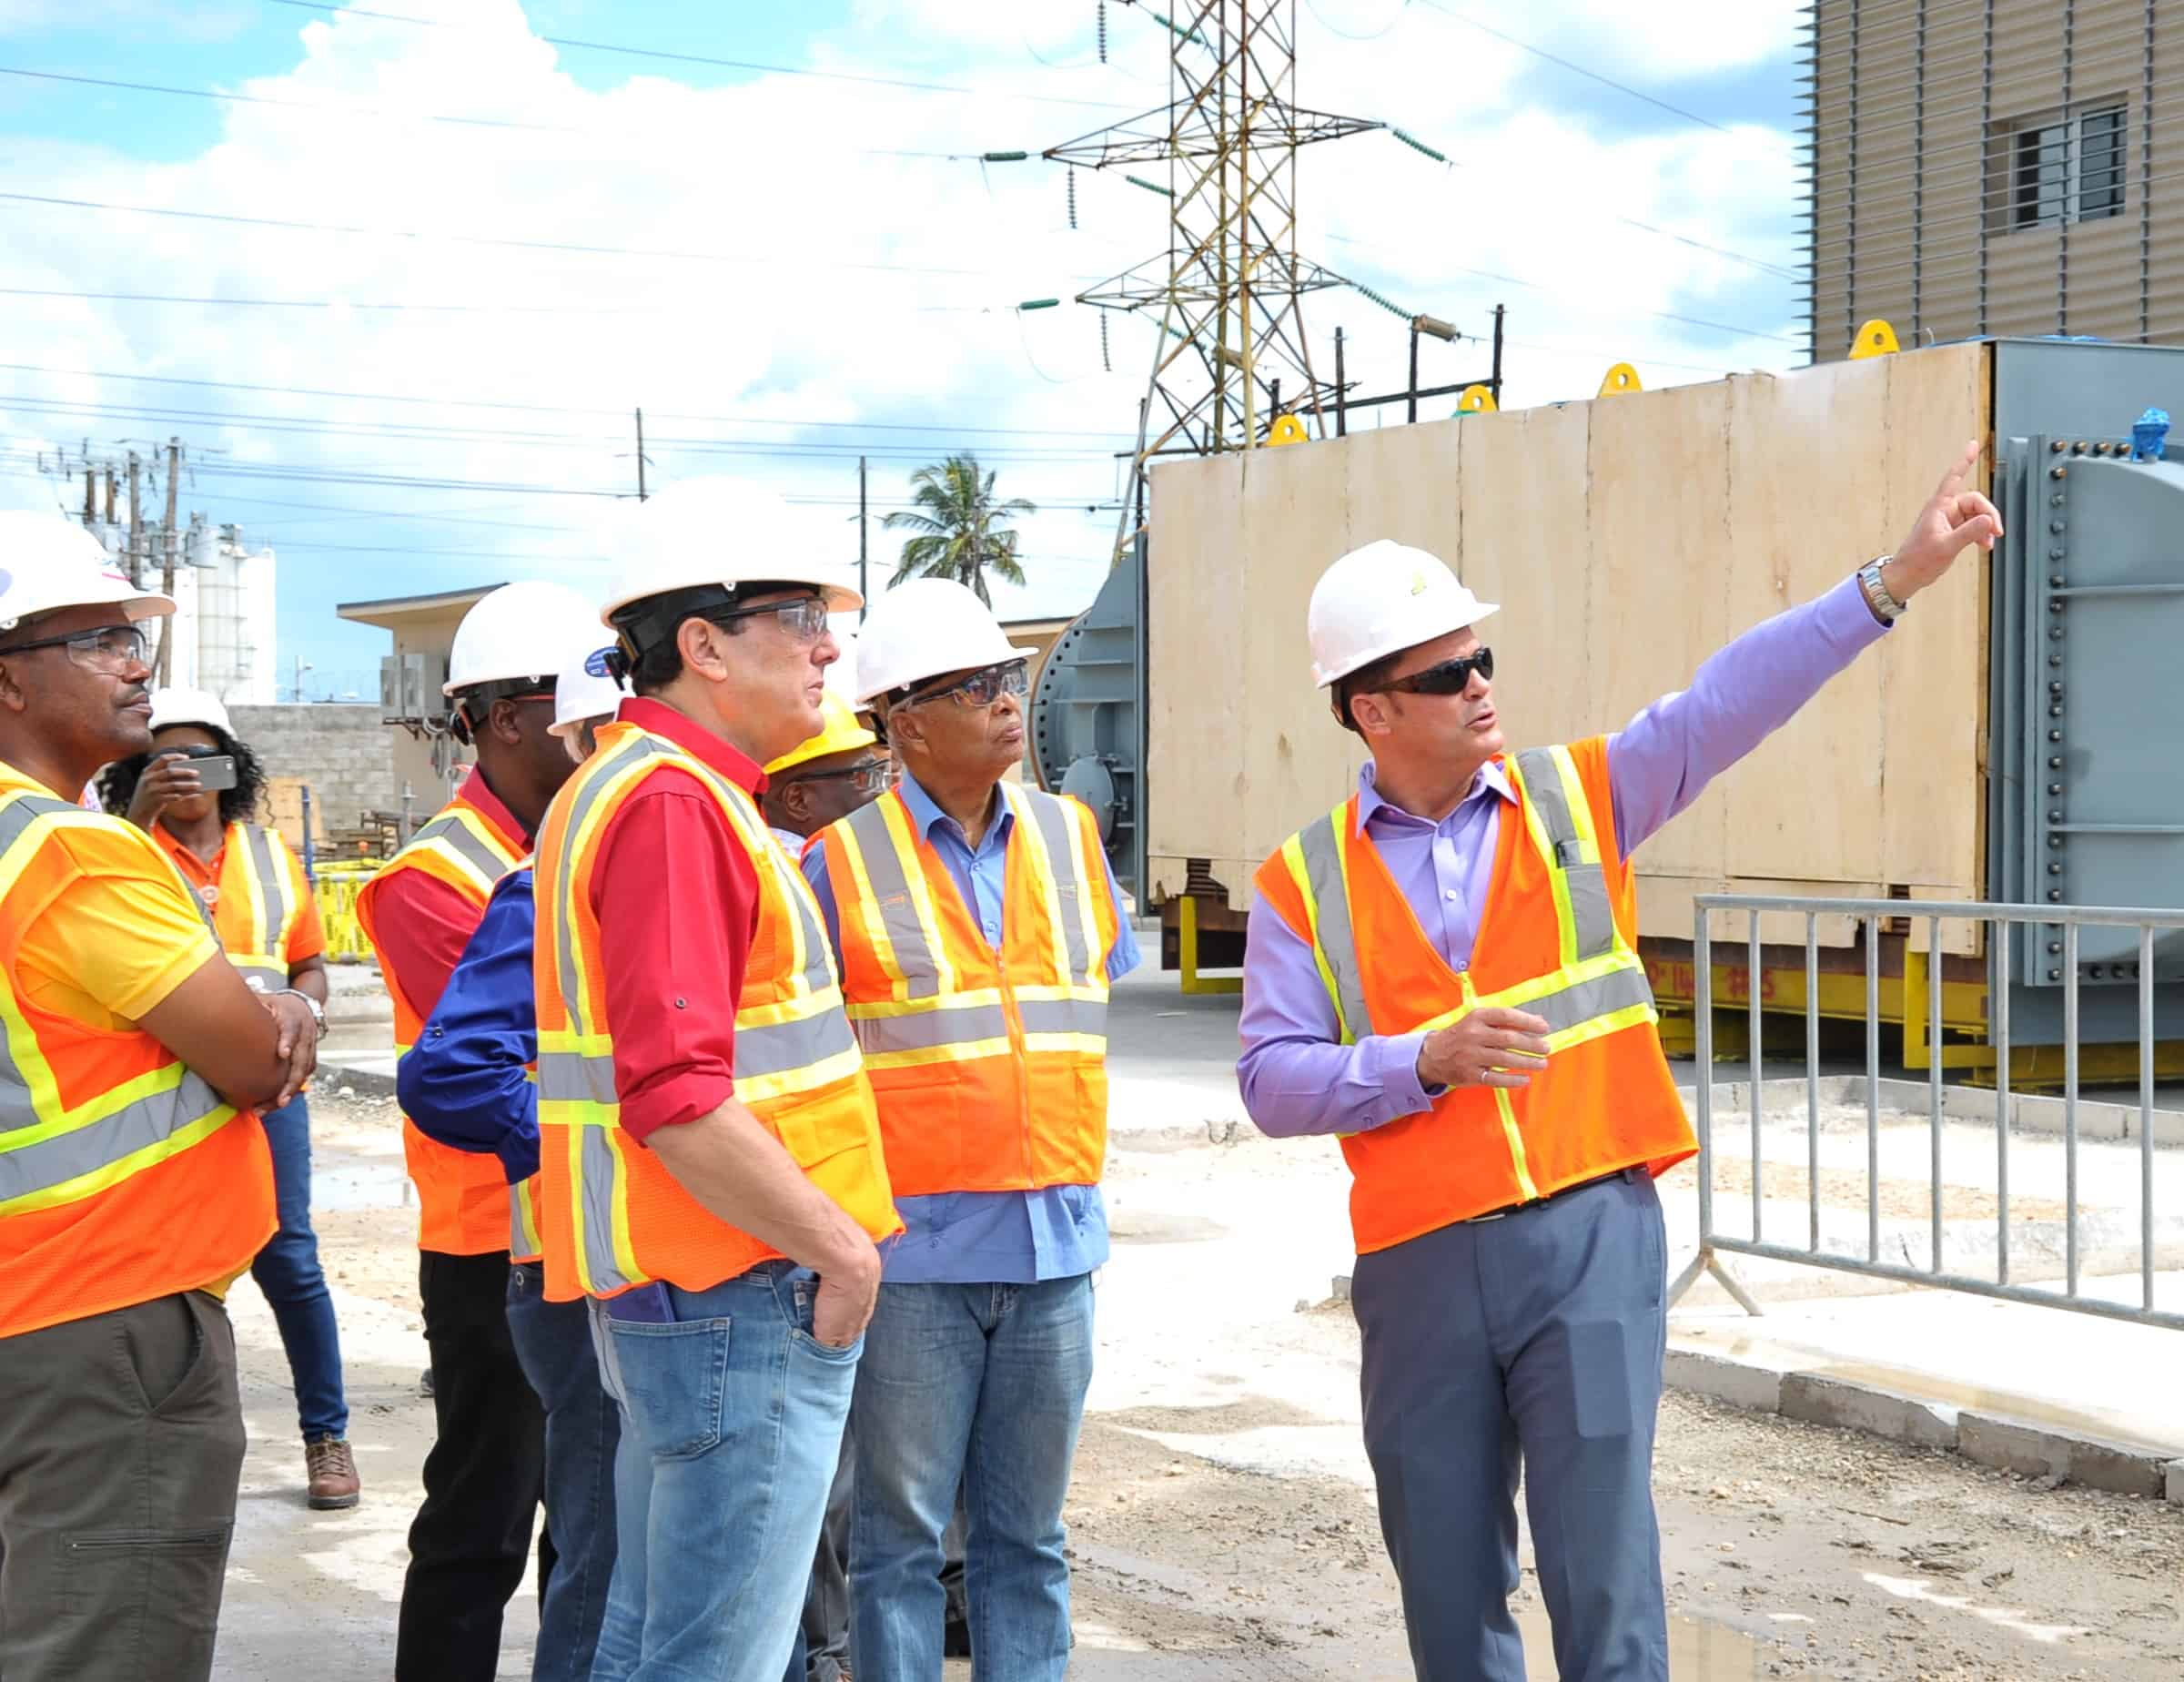 New 194 Mw Plant Ahead Of Holidays